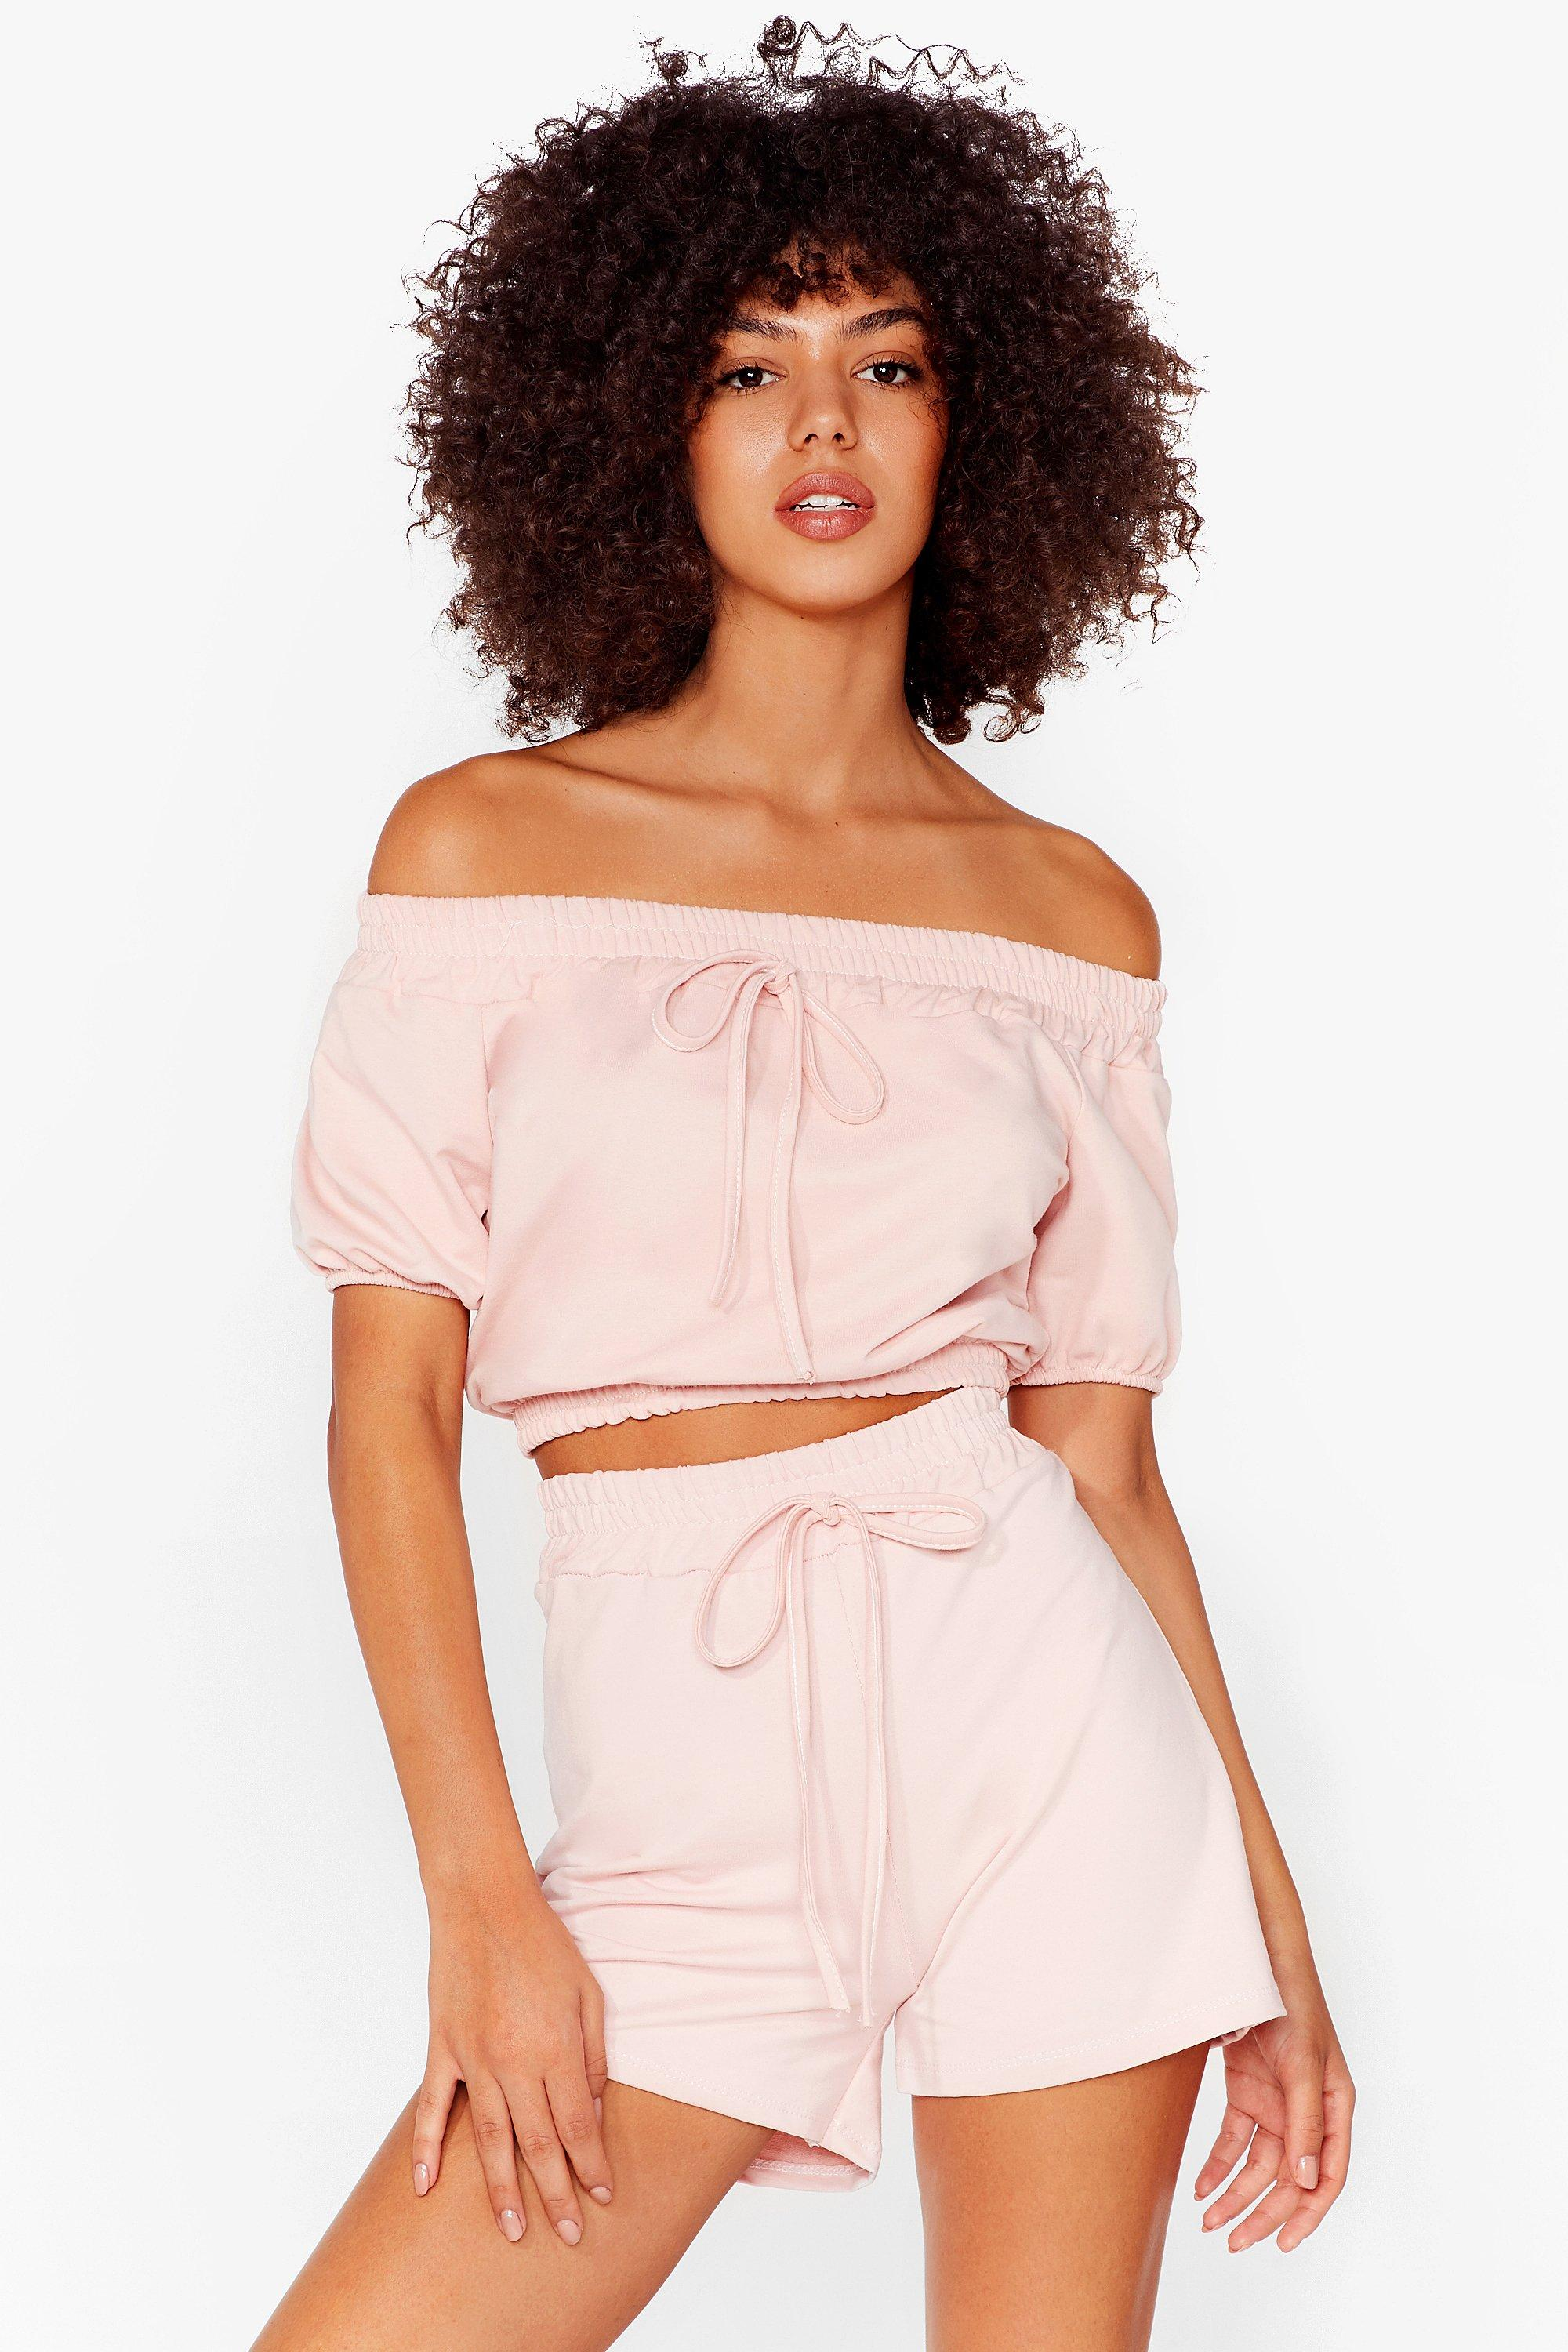 Image of Womens Day Off-the-Shoulder Crop Top and Shorts Set - Pink